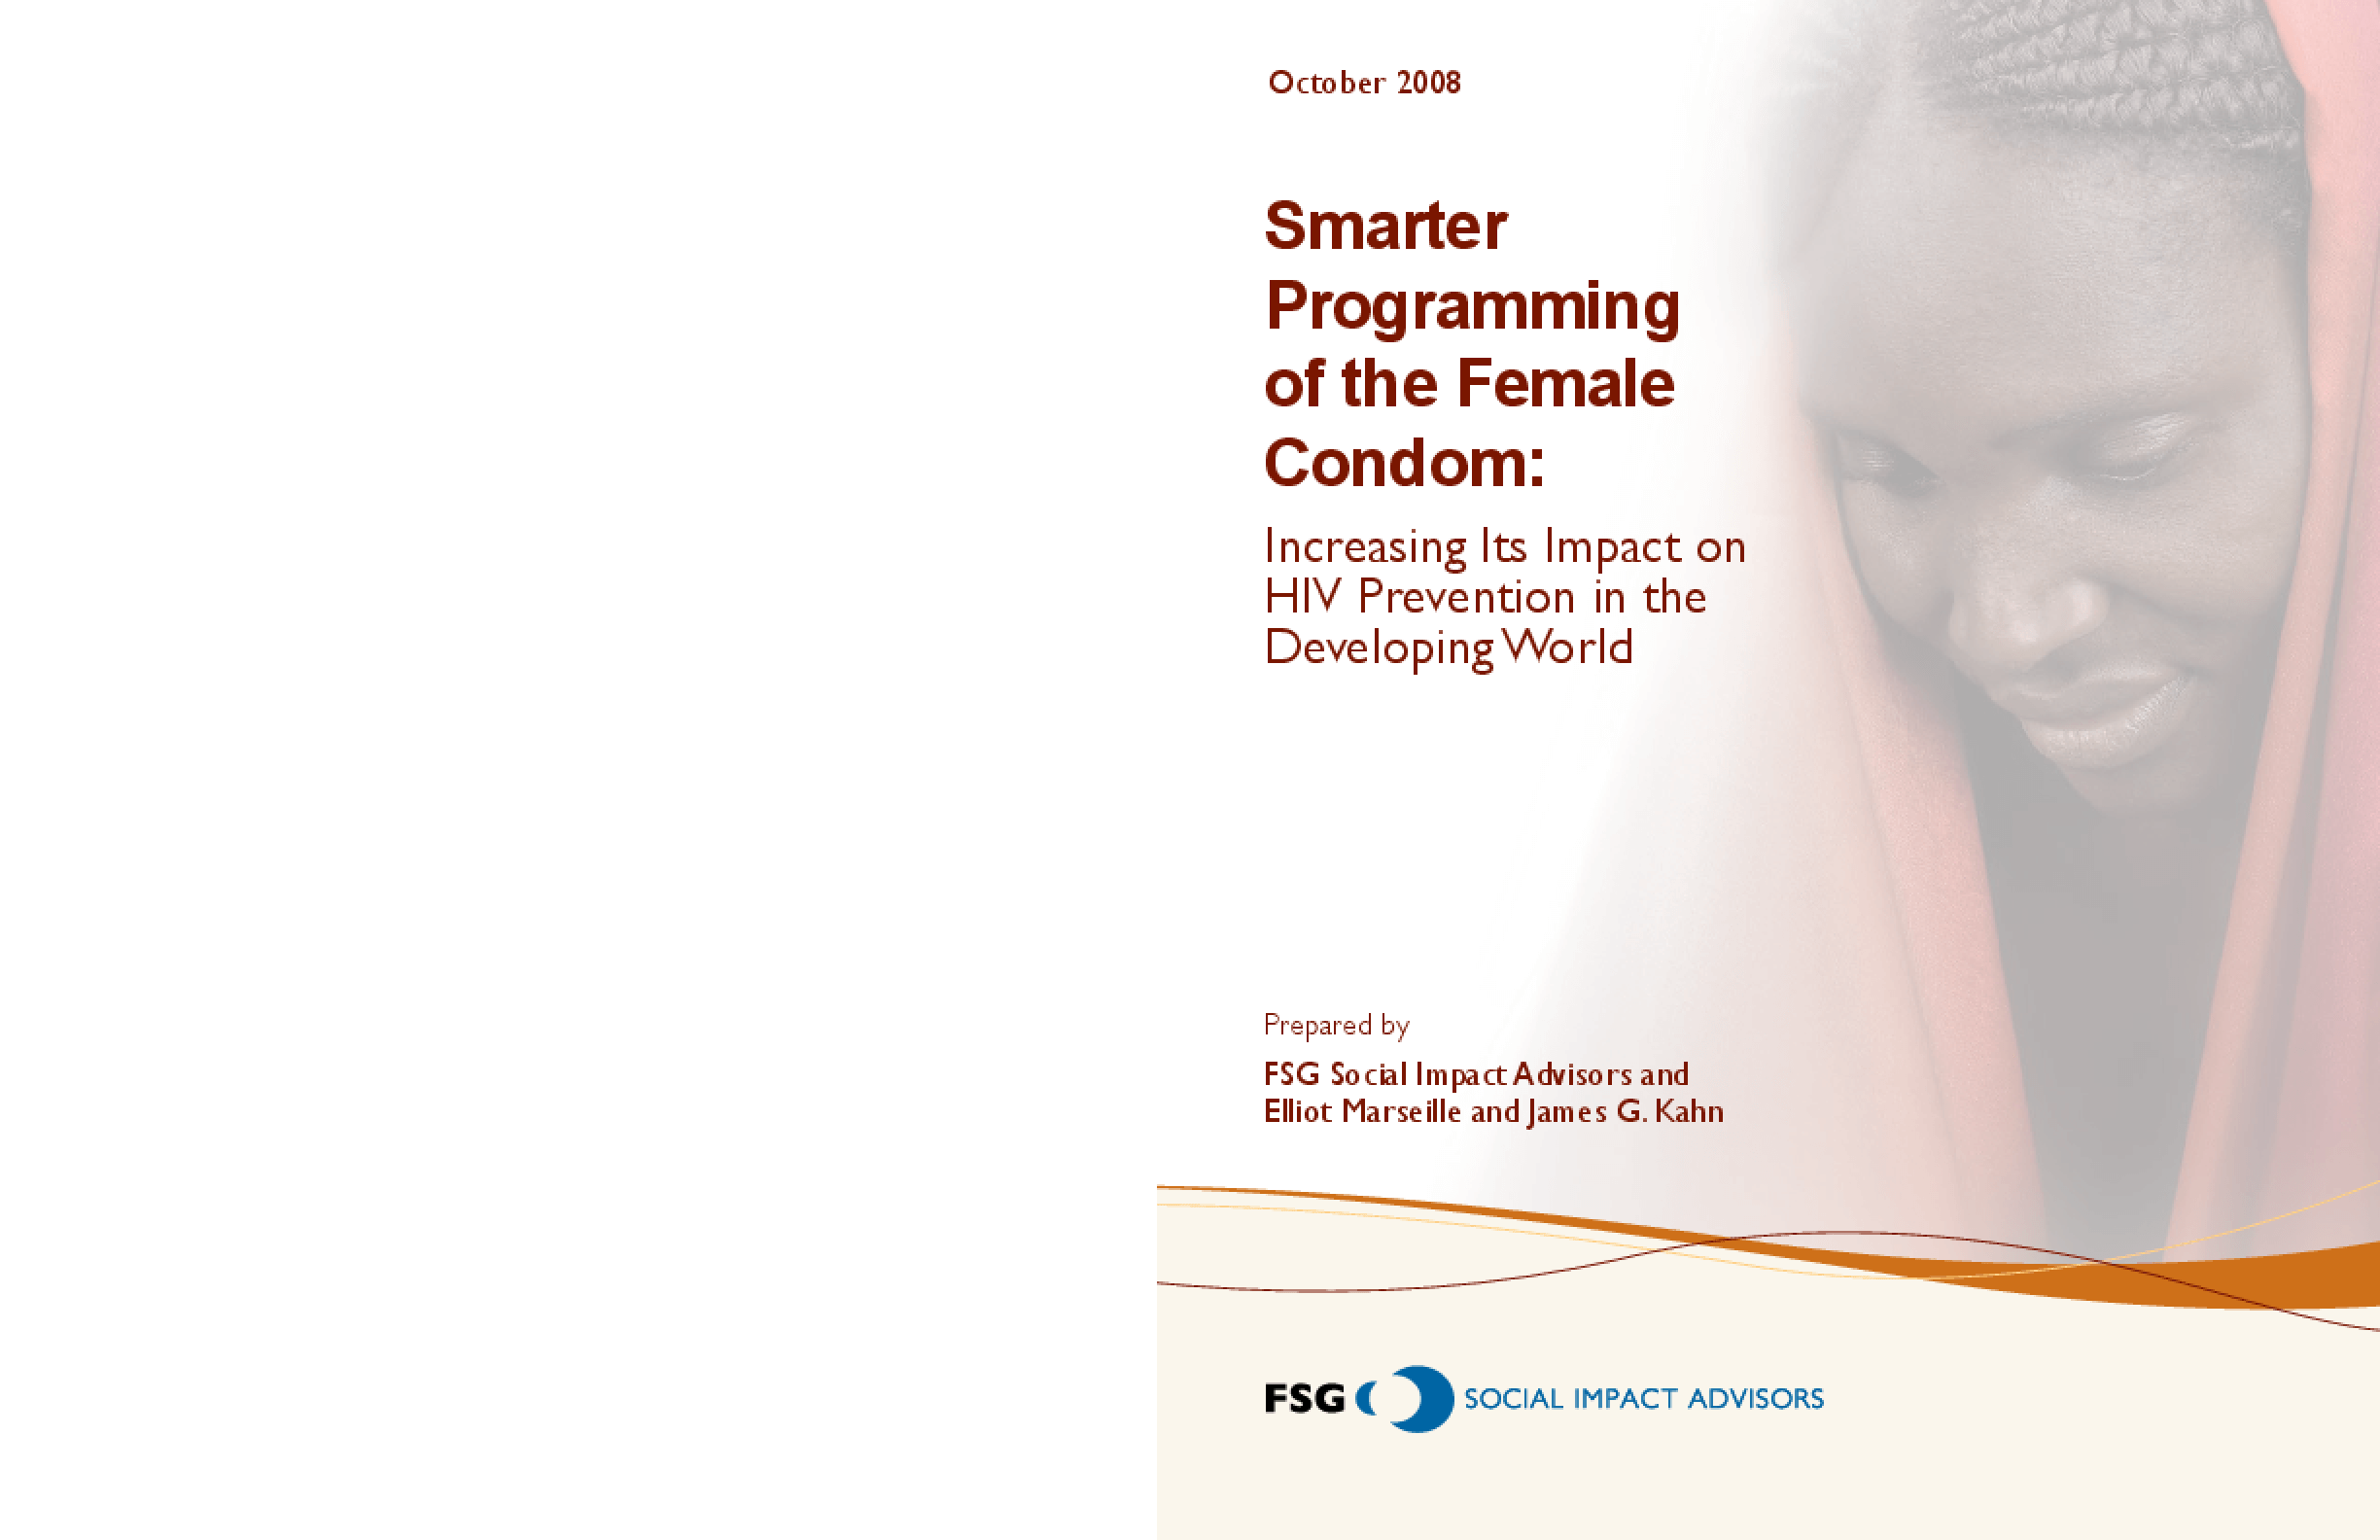 Smarter Programming of the Female Condom: Increasing Its Impact on HIV Prevention in the Developing World